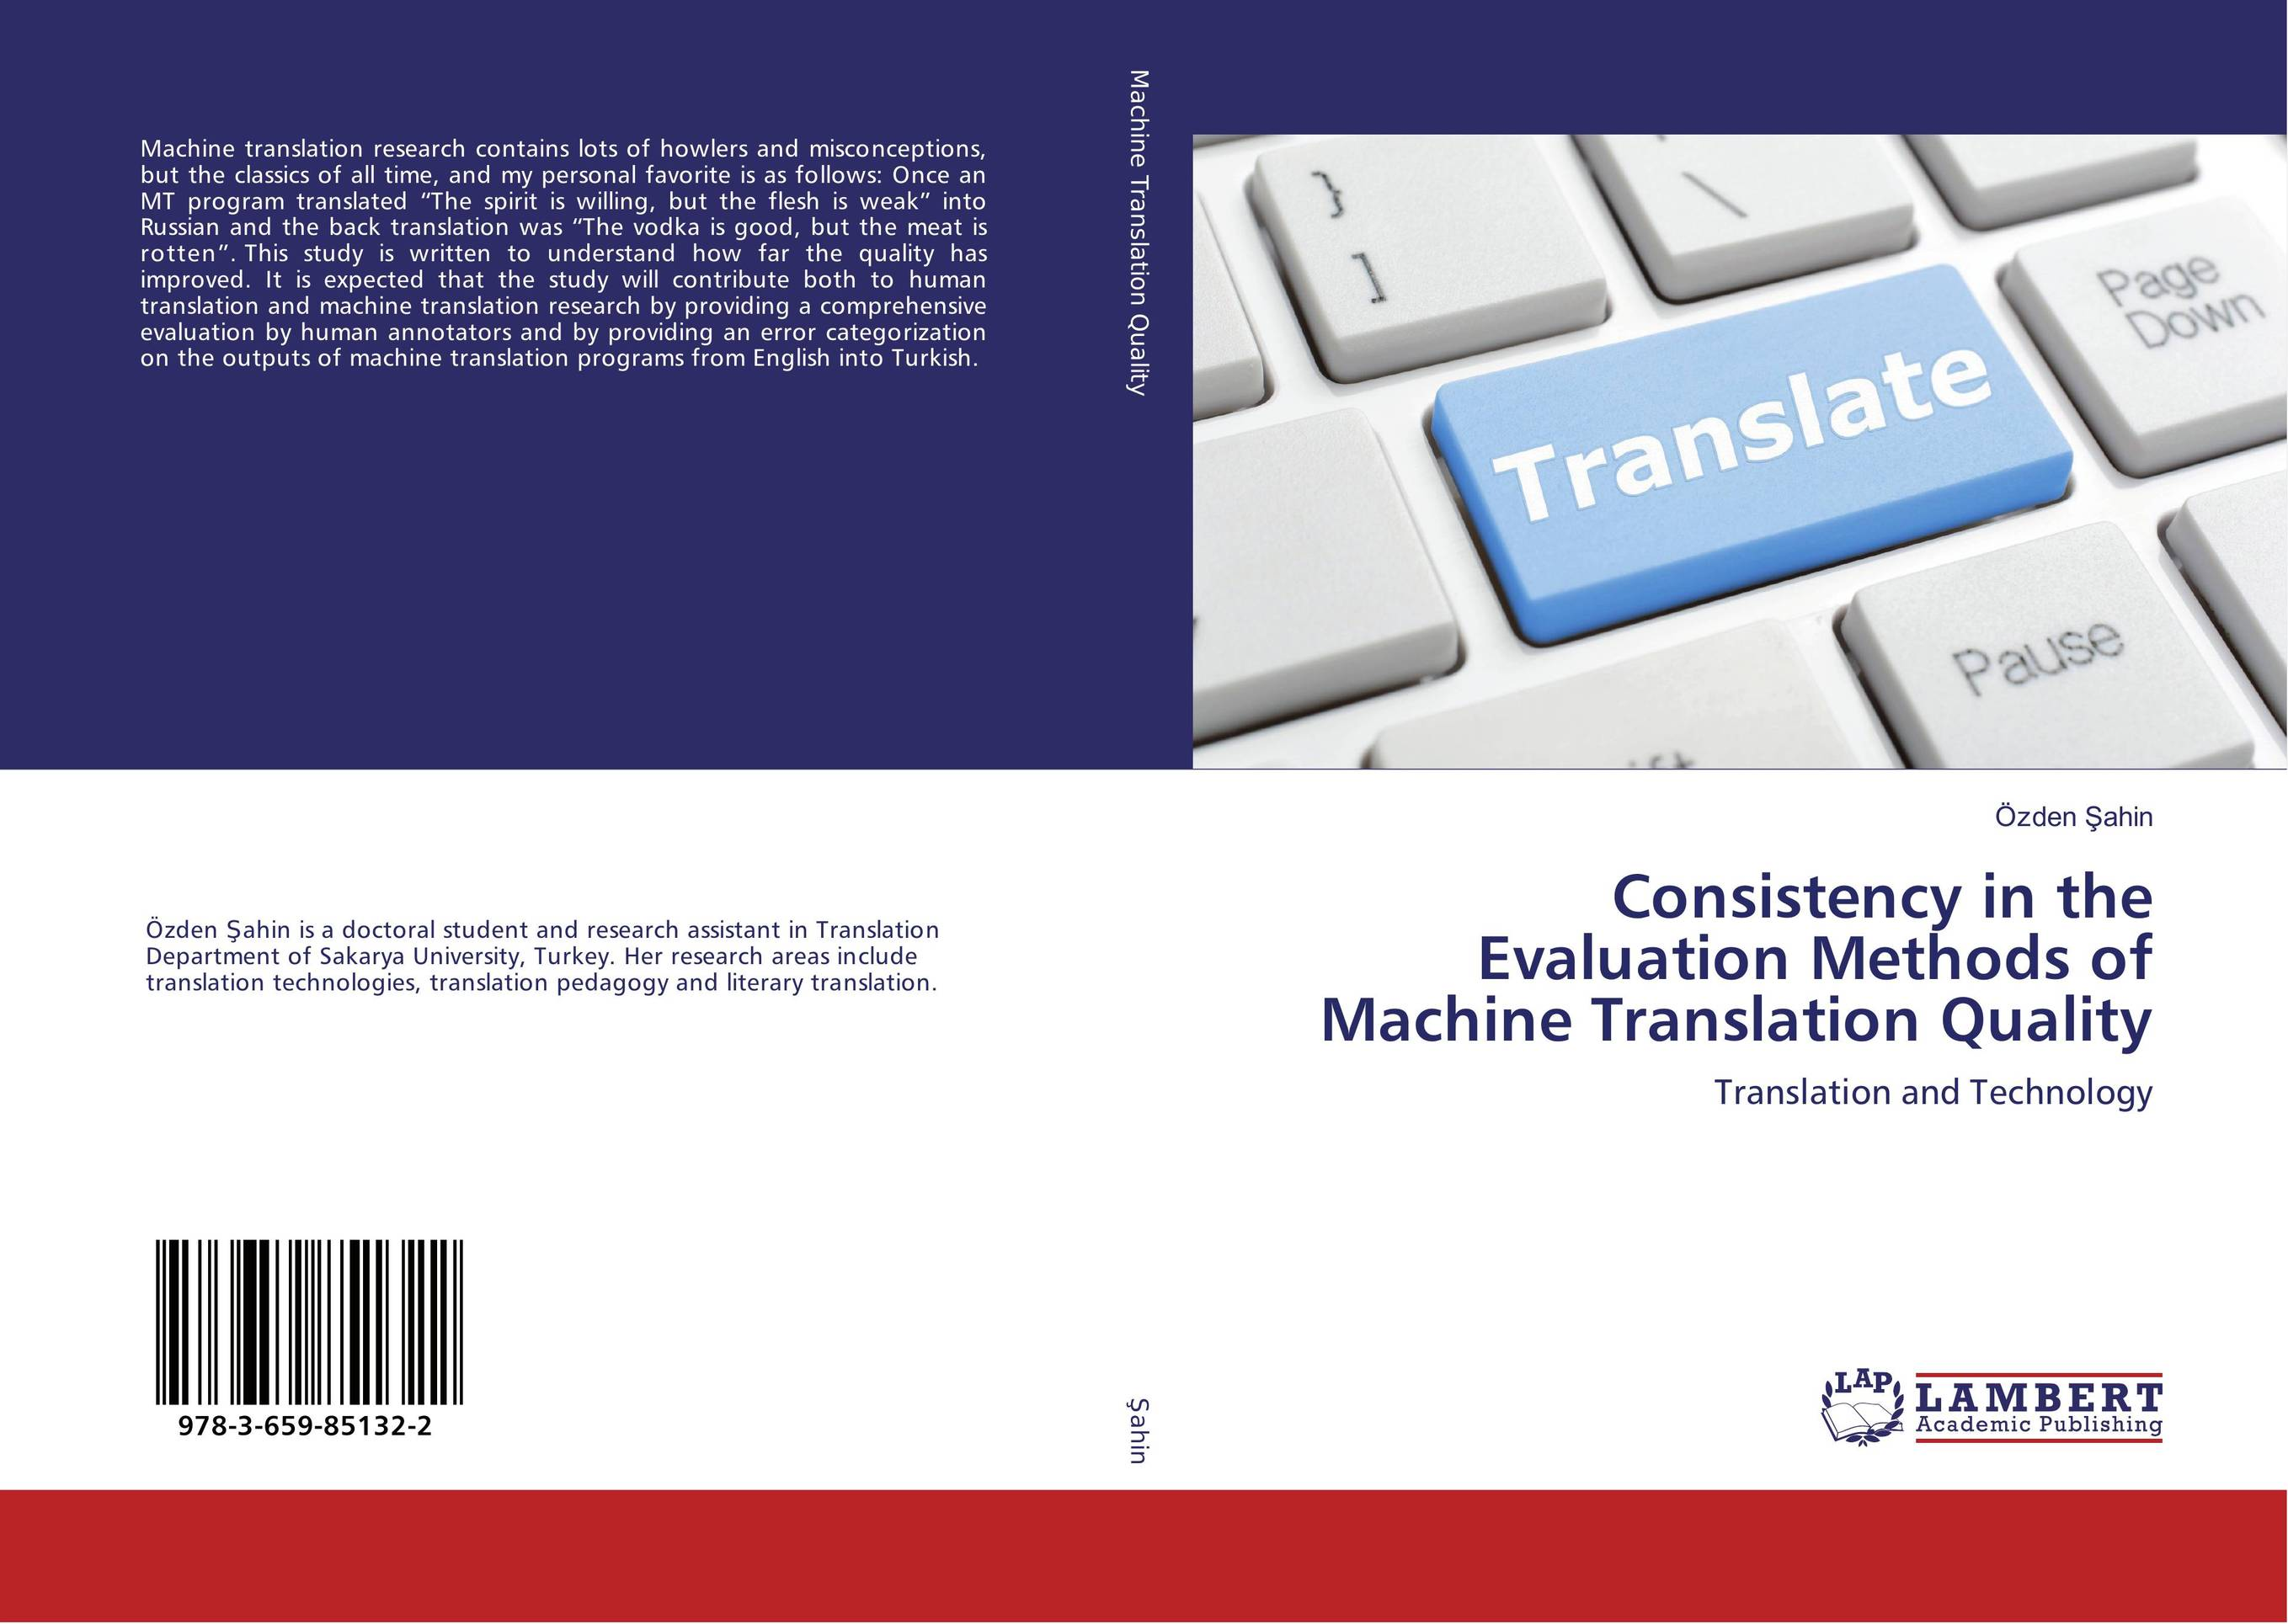 Consistency in the Evaluation Methods of Machine Translation Quality envisioning machine translation in the information future 4th conference of the association for machine translation in the americas amta 2000 cuernavaca mexico